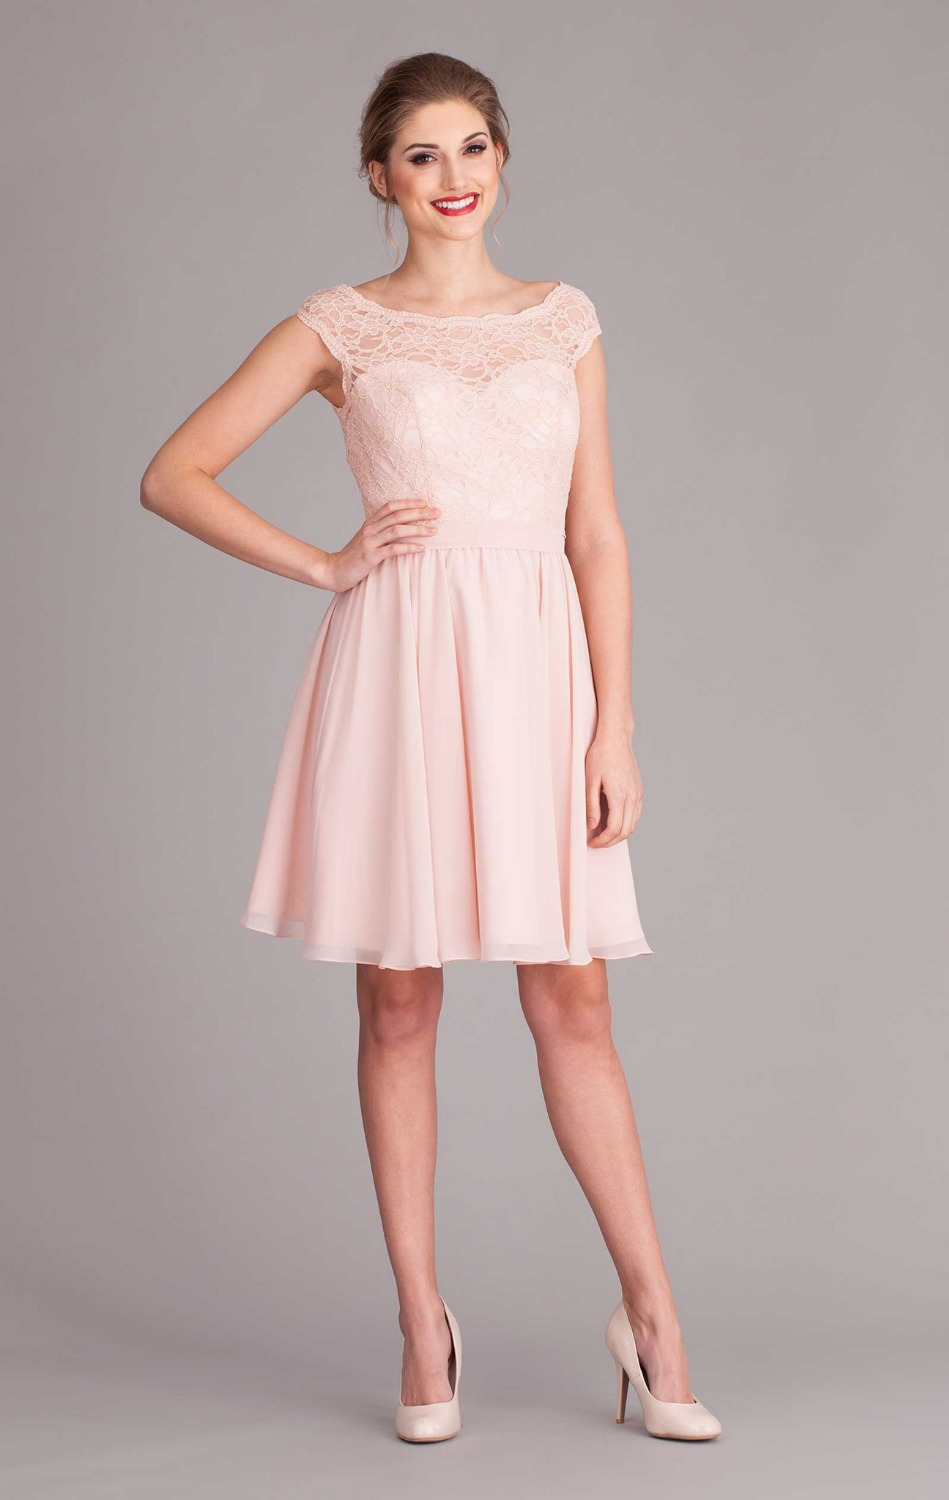 2017 Pink V Back Cap Sleeve Short Lace Bridesmaid Dress With Sashes Knee Length Wedding Guest Vestidos Madrinhas In Dresses From Weddings